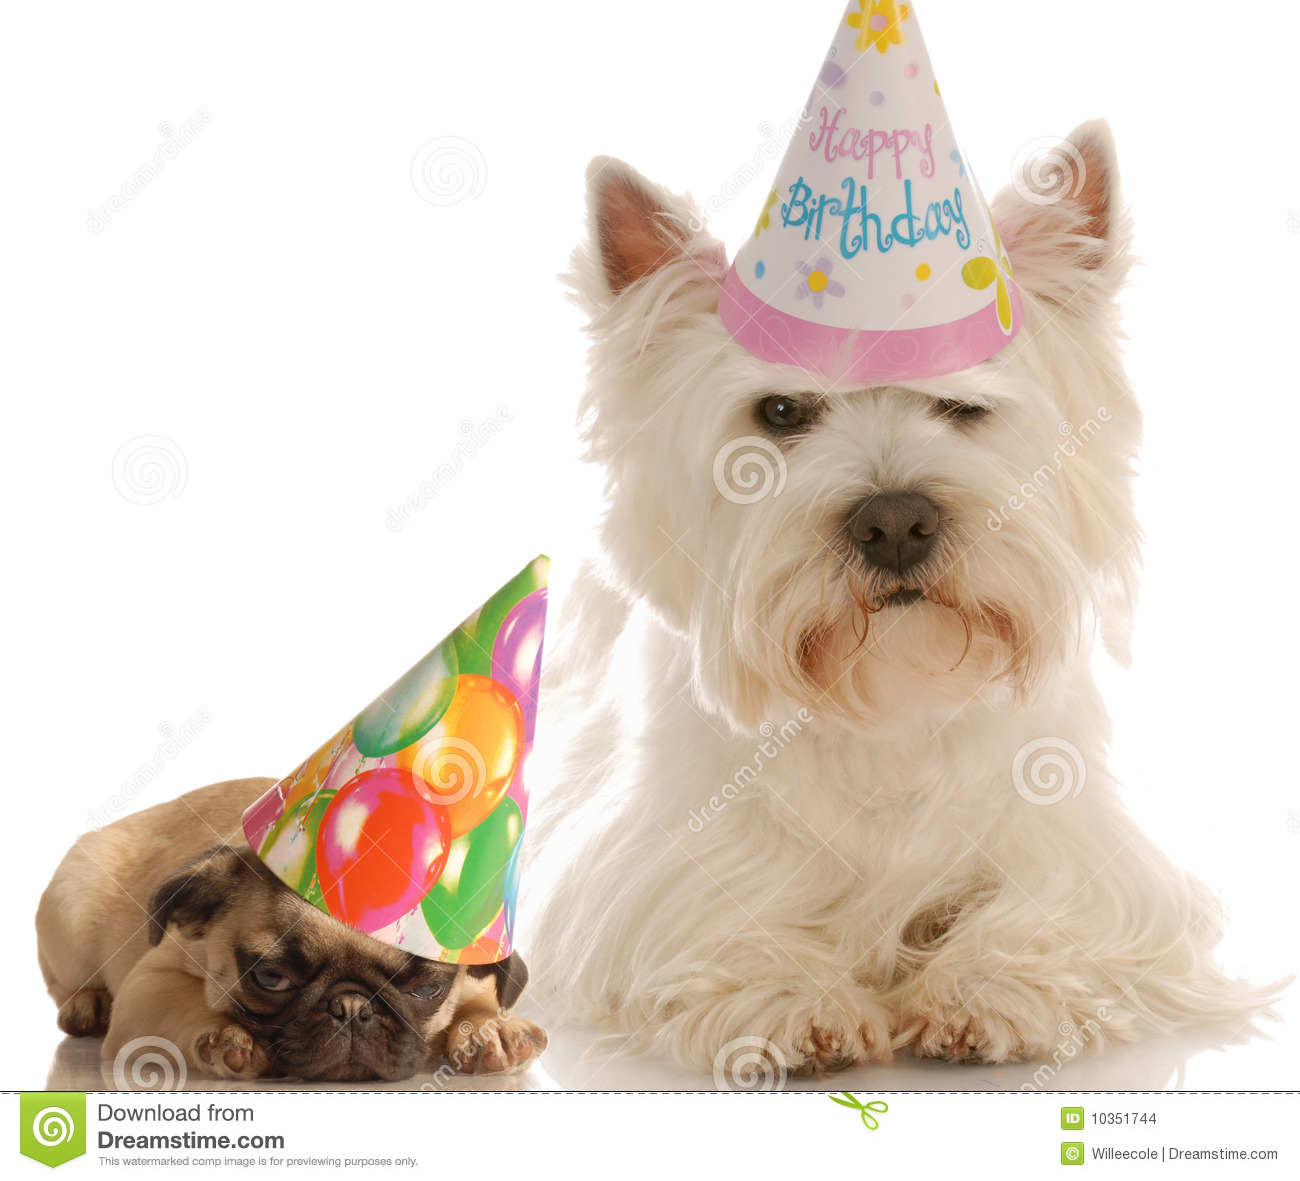 Birthday Cake Wallpaper 3d Download Birthday Dogs Stock Images Image 10351744